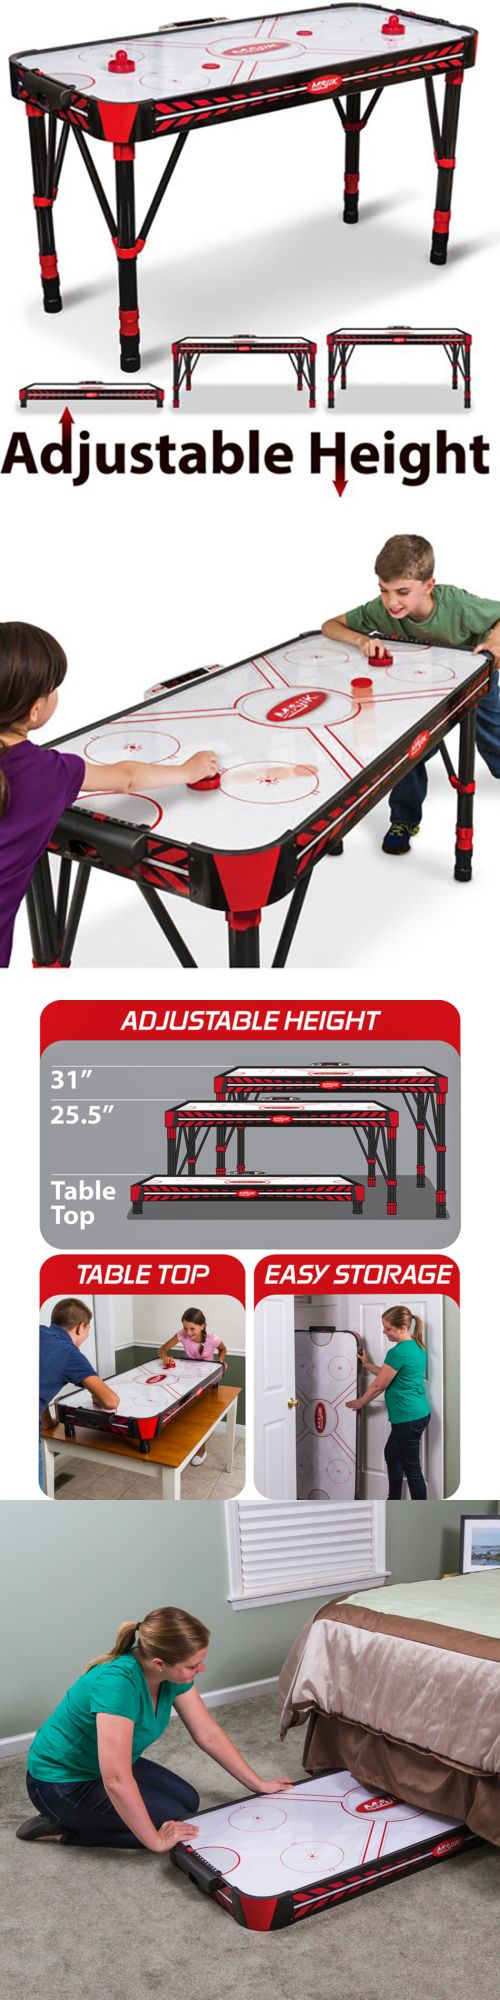 Air Hockey 36275: Air Hockey Table Led Scoring Sound Adjustable Height Hockey Games Setup Playtime -> BUY IT NOW ONLY: $132.02 on eBay!